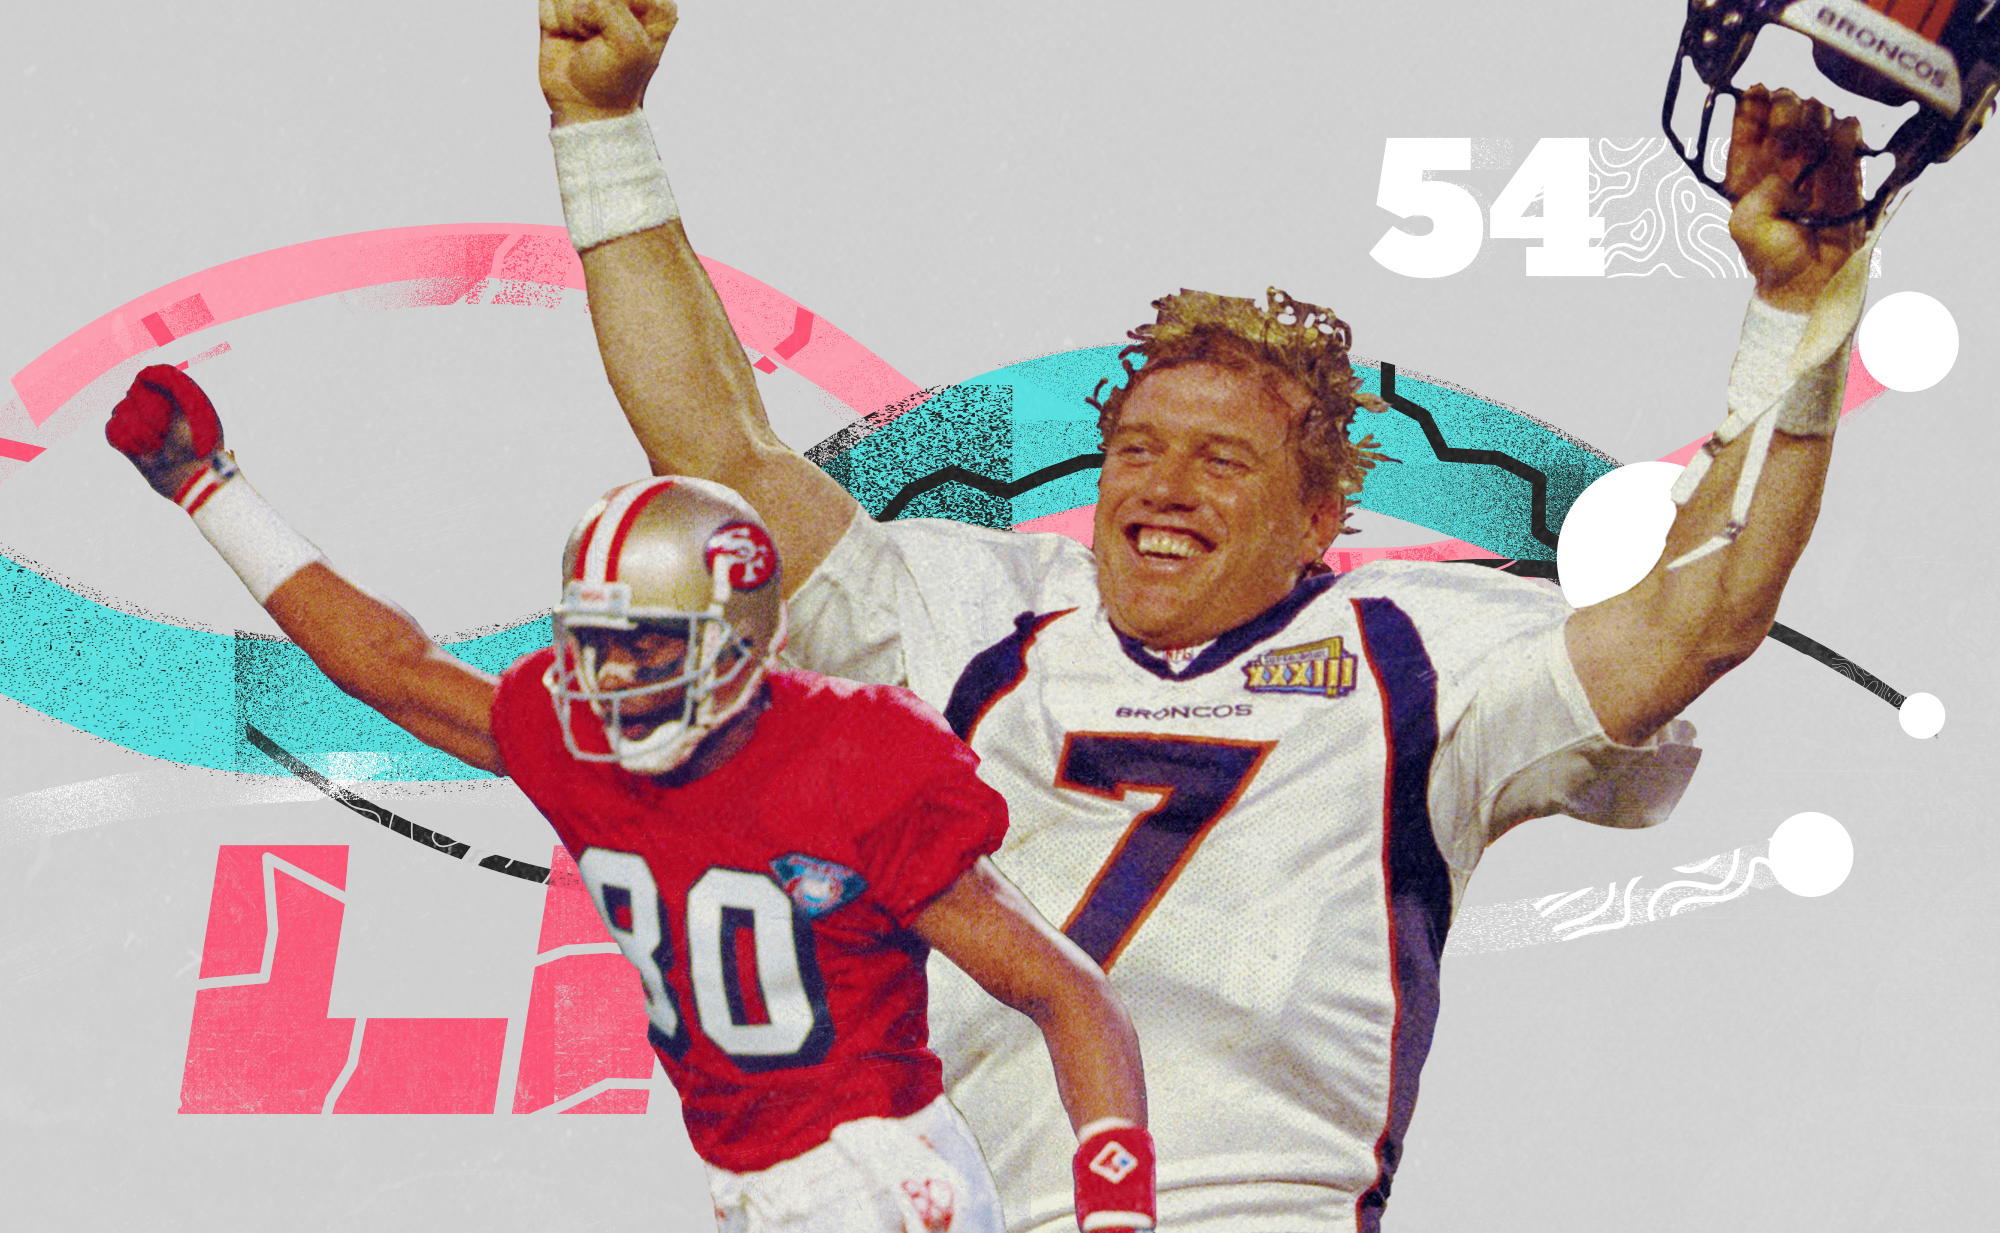 A Super Bowl collage with 49ers WR Jerry Rice and Broncos QB John Elway, superimposed on a white background with pink, teal, and black lines